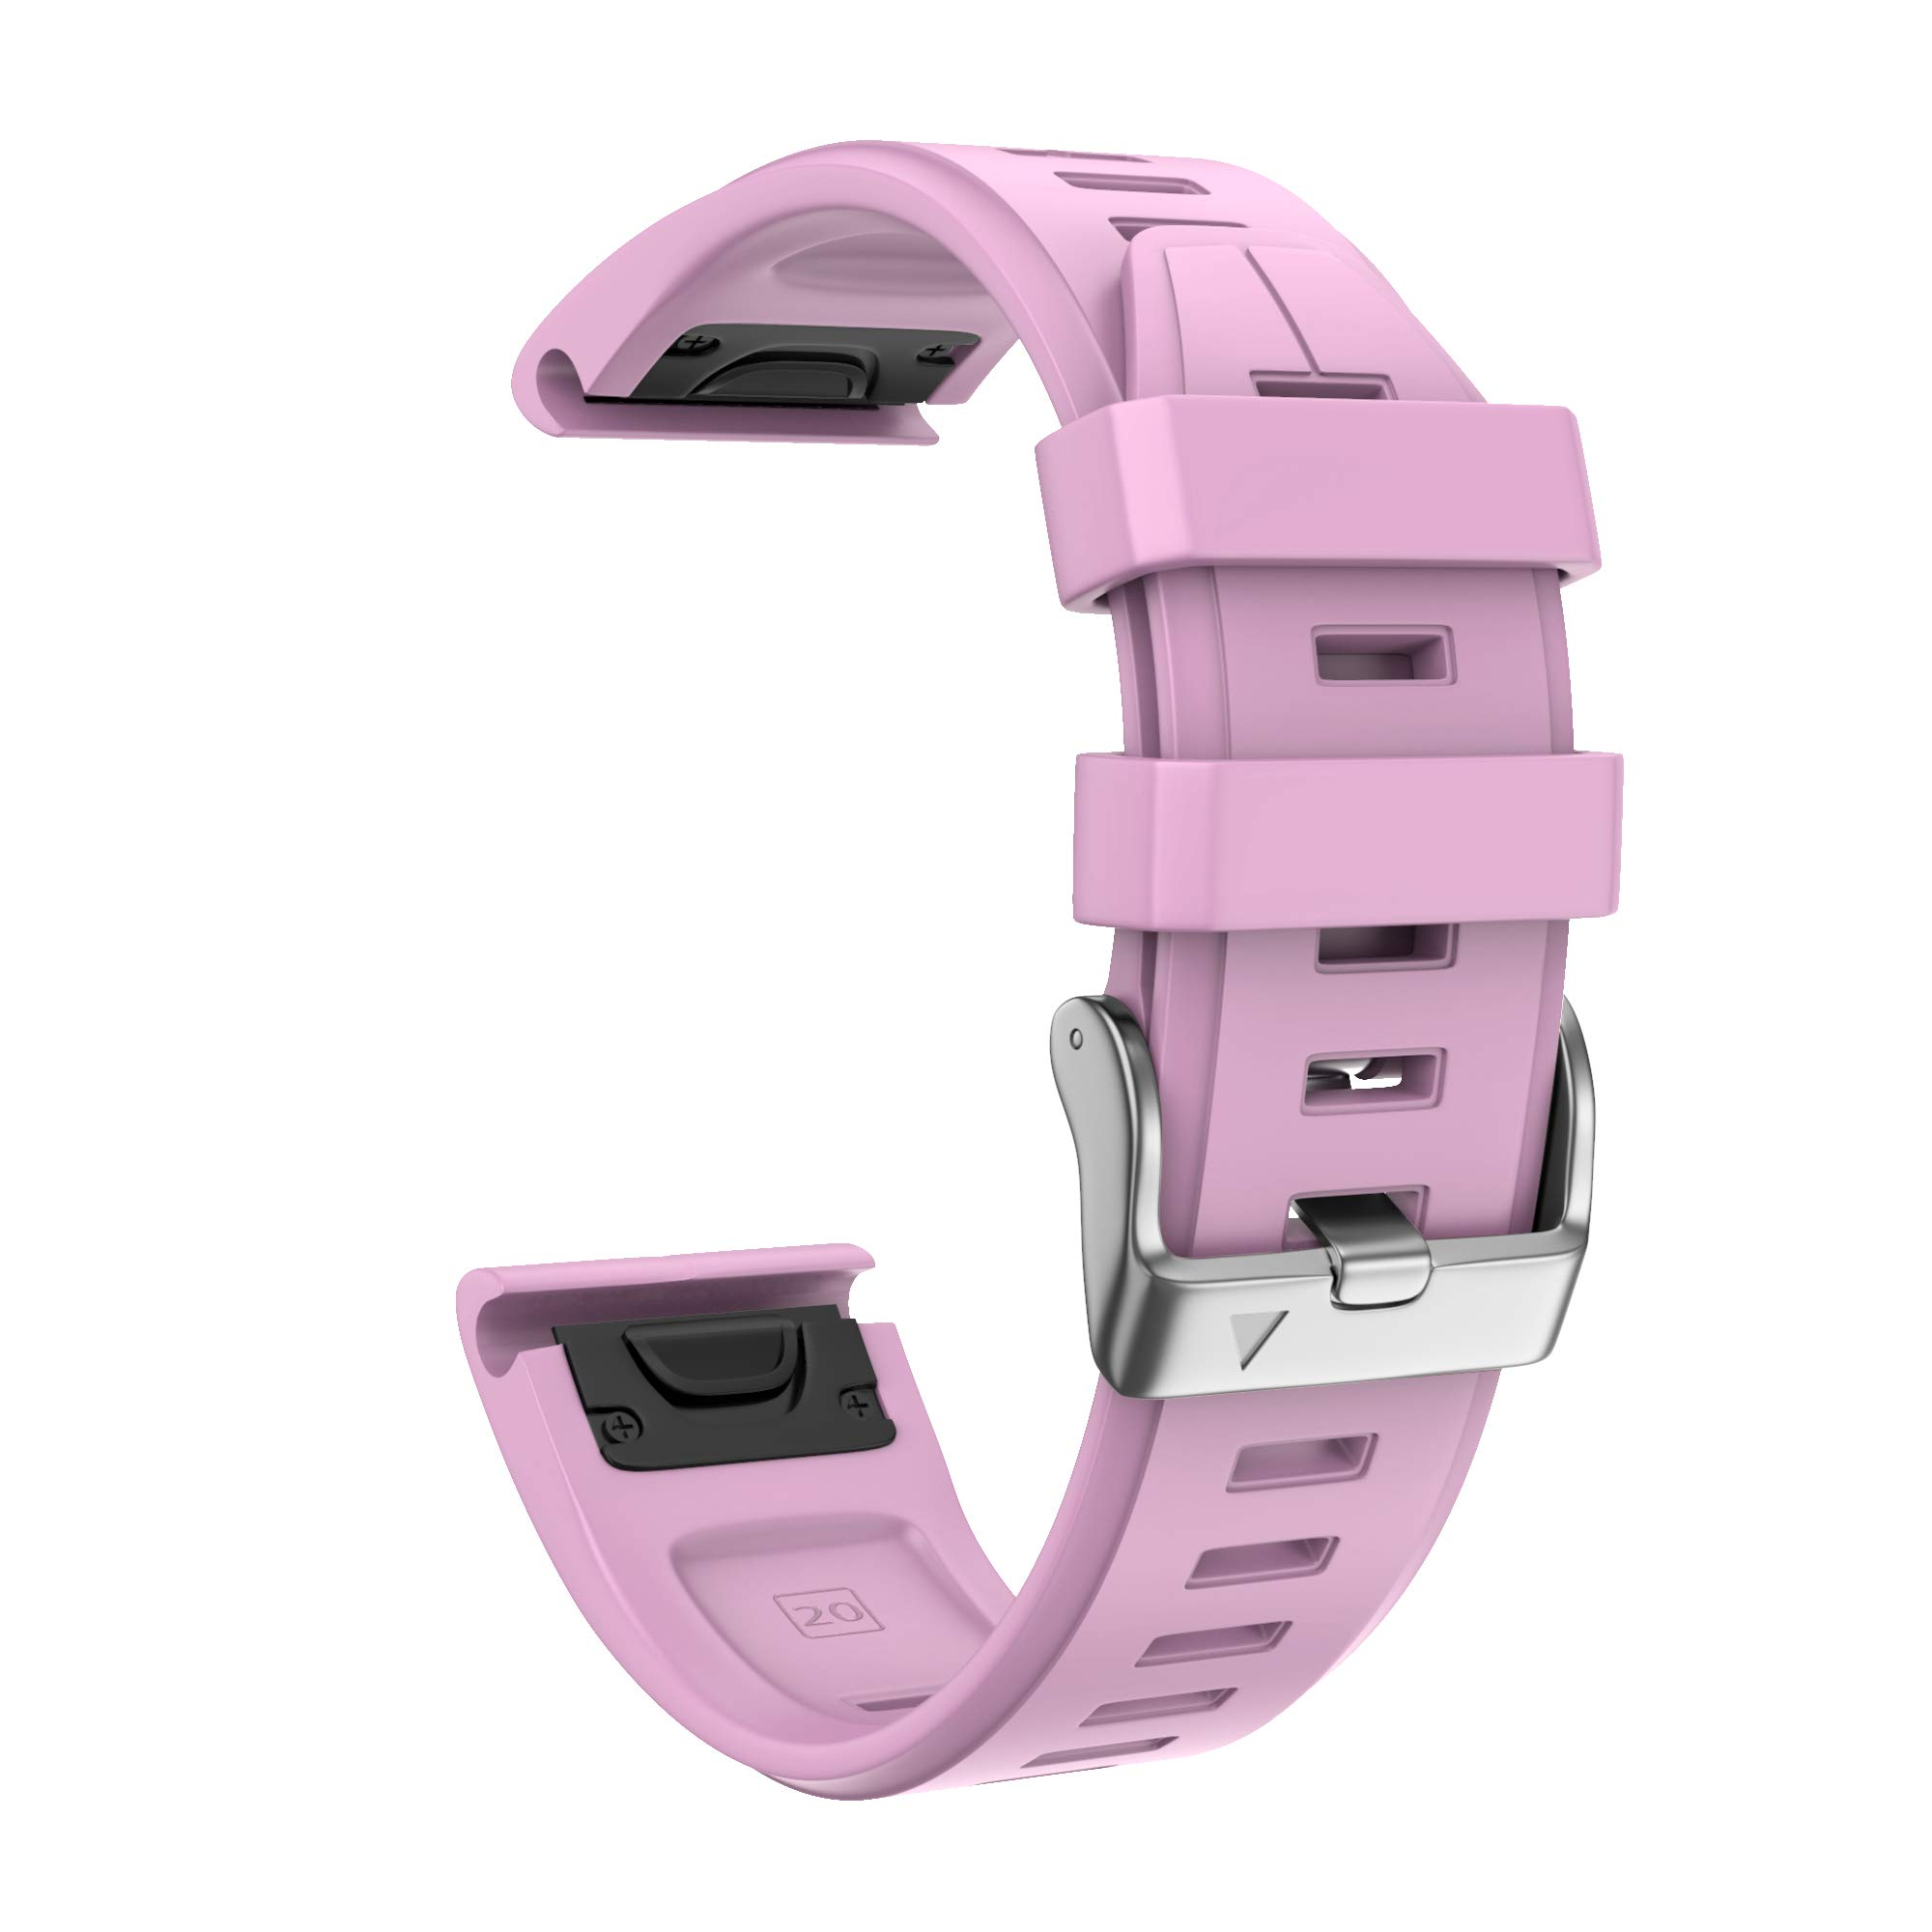 ANCOOL Compatible with Fenix 5S Plus Bands 20mm Width Easy Fit Soft Silicone Watch Bands Replacement for Fenix 6S/Fenix 6S Pro/Fenix 5S Smartwatches, Pink by ANCOOL